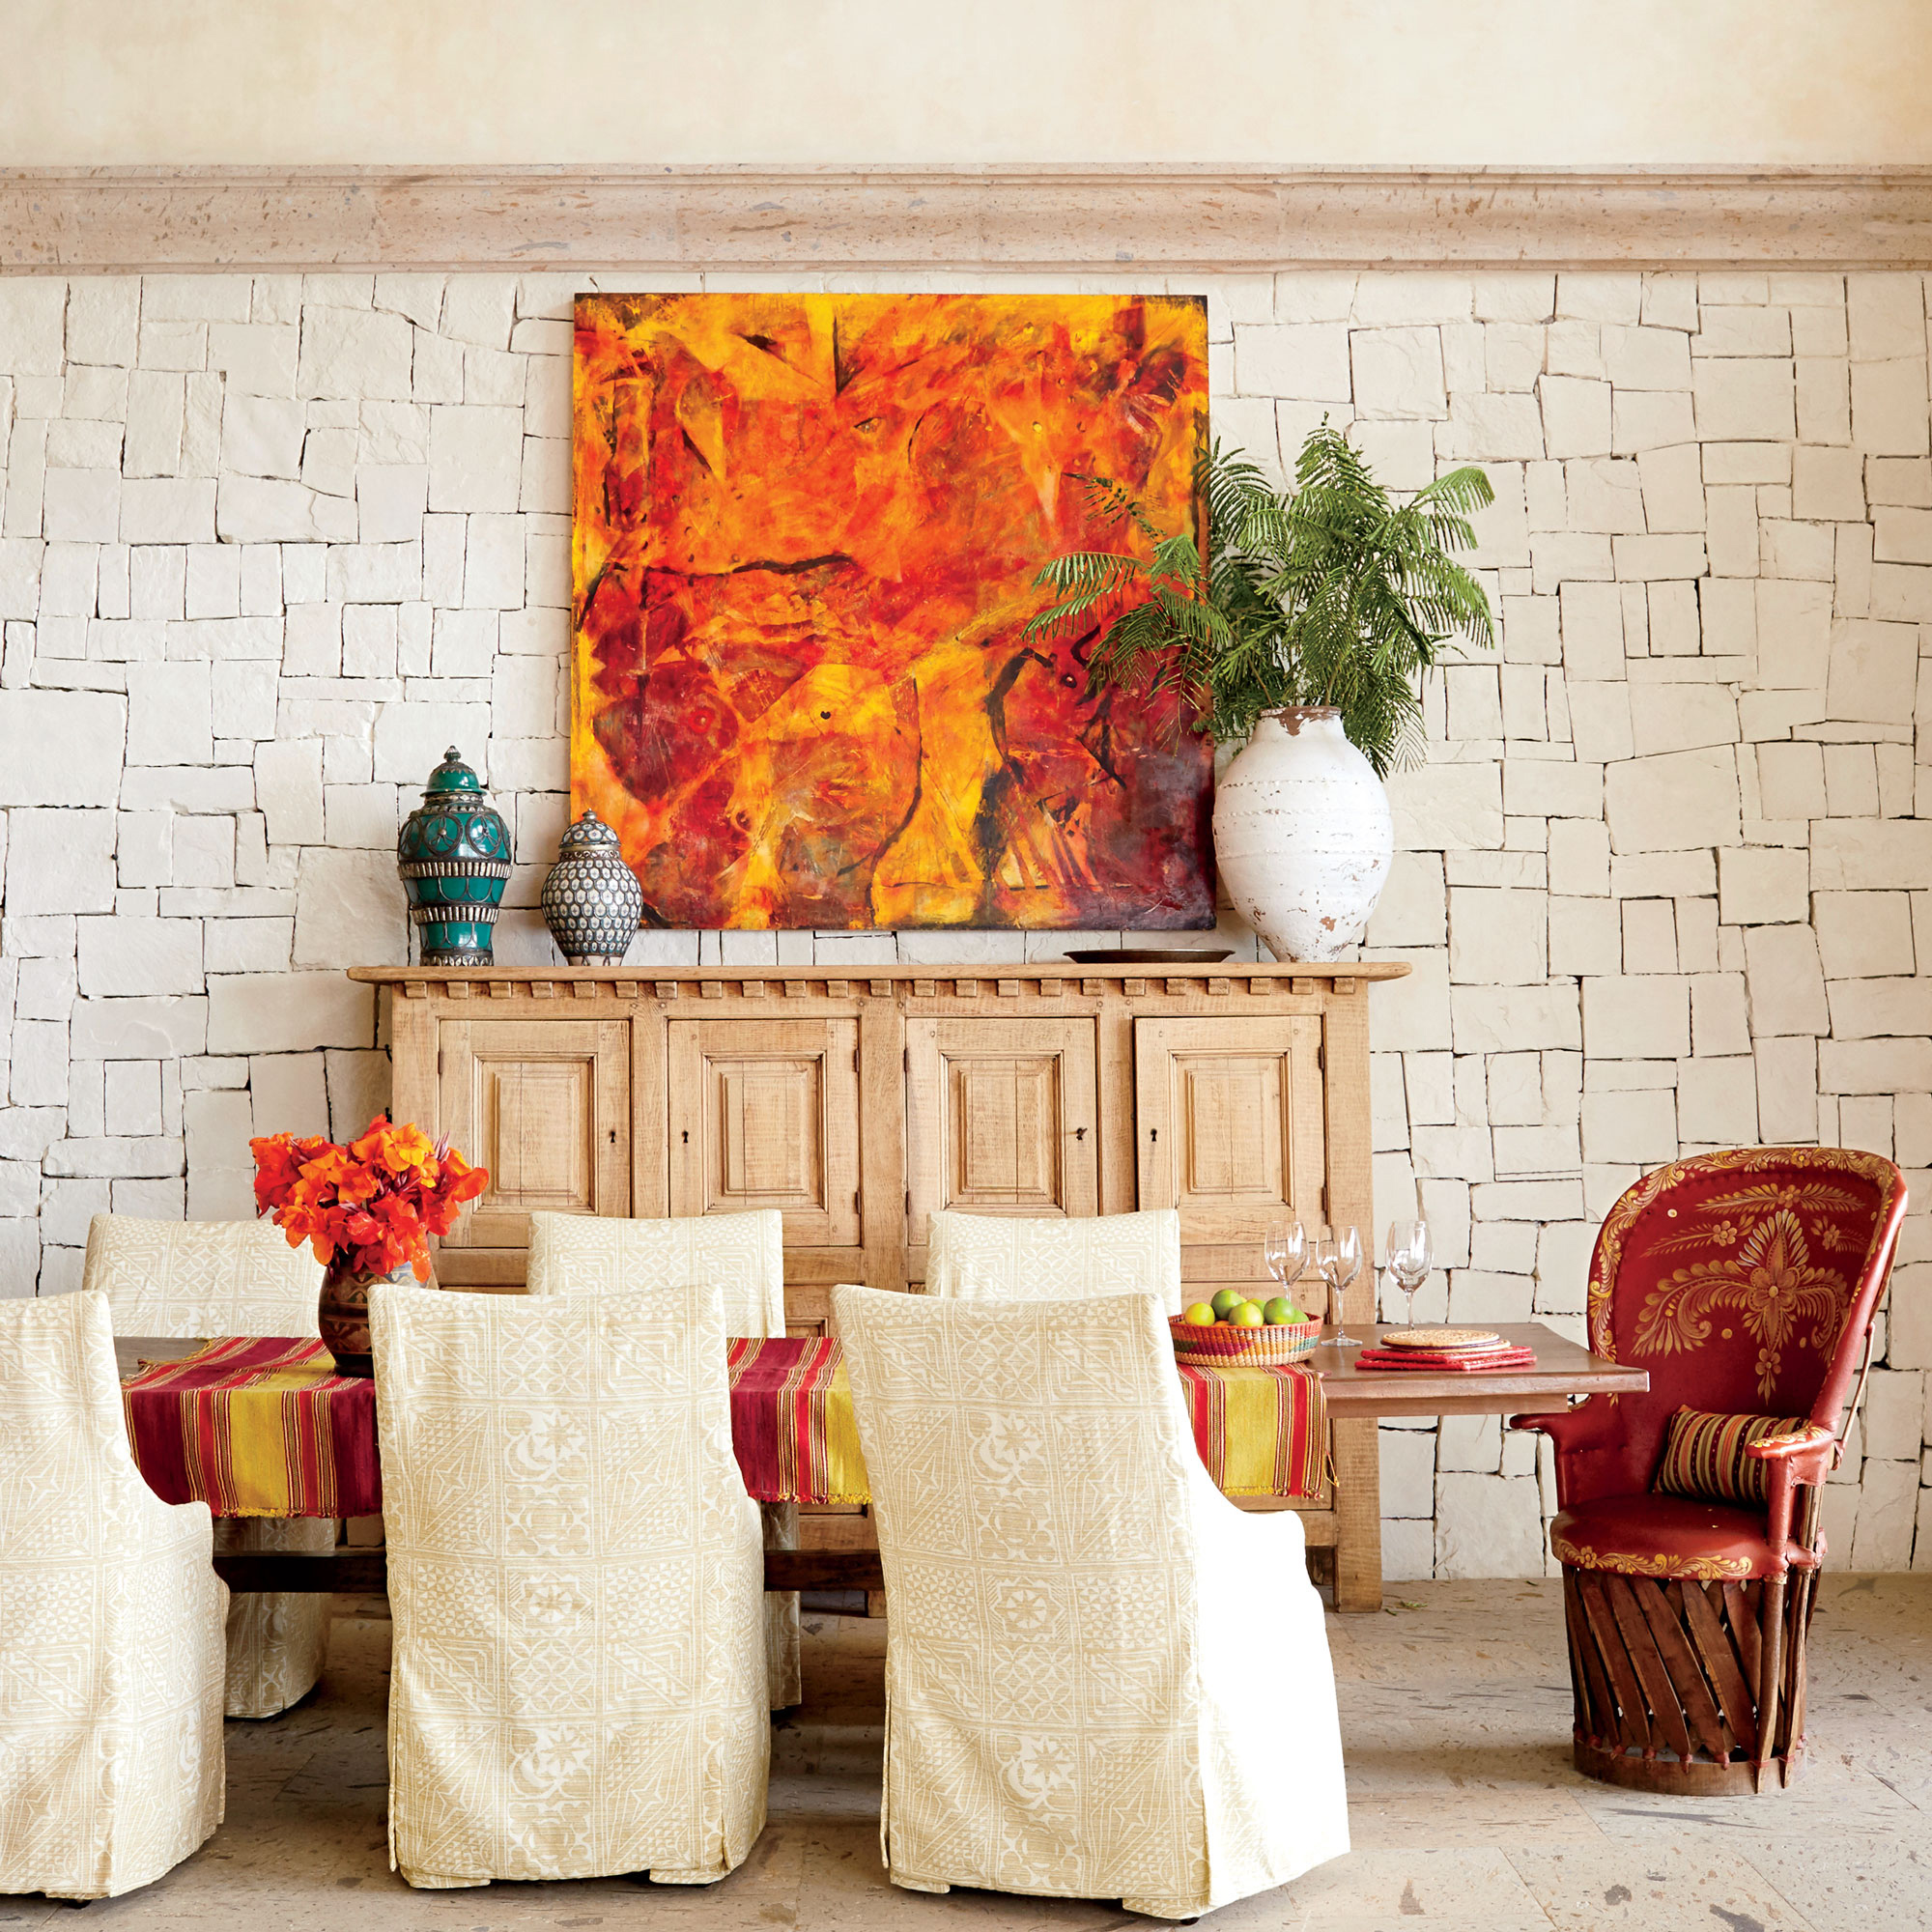 Even a stone wall feels warm and beach house-appropriate when it's whitewashed. The texture of the stone roots the space in warmth and a feeling of age, while off-white linen slipcovers, blond woods, and light floors contribute to the room's bright, airy